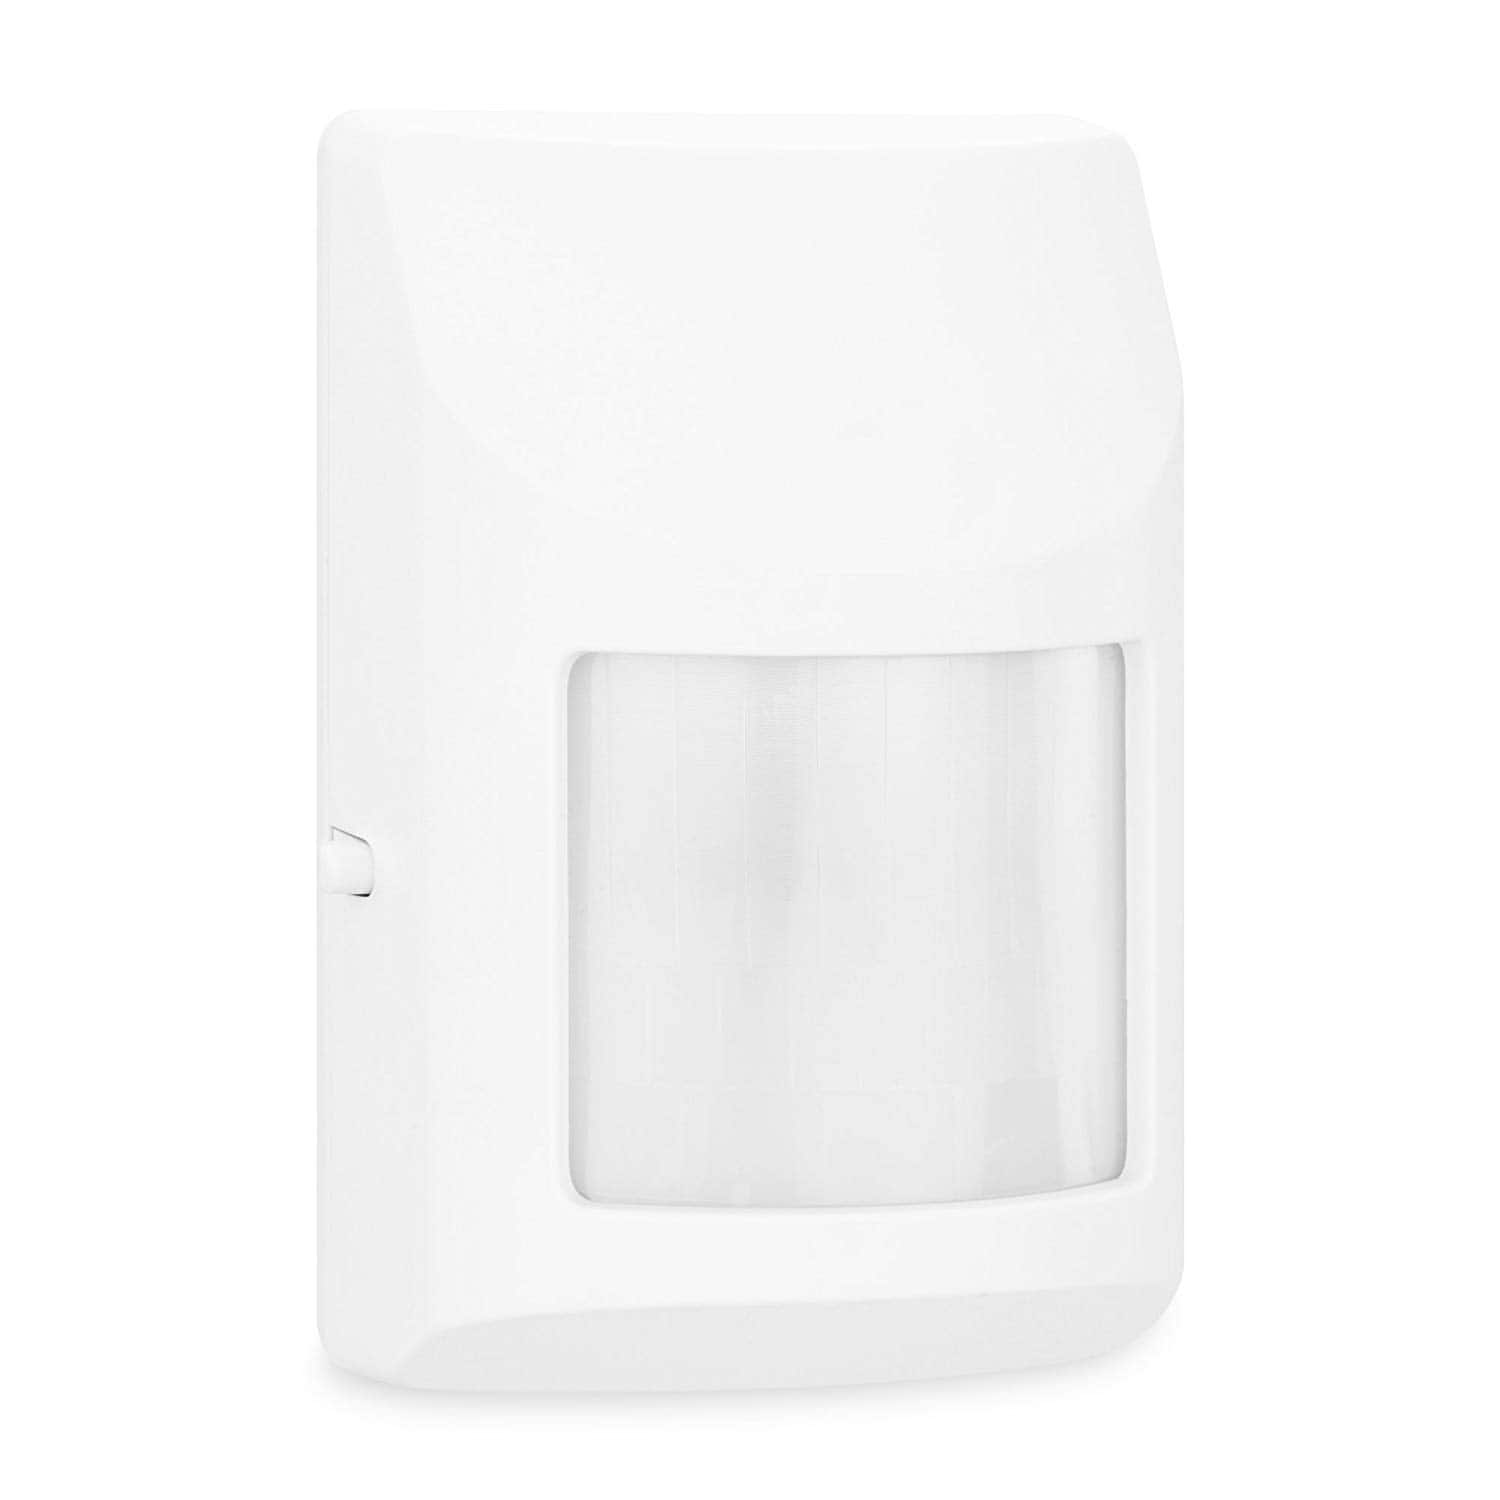 Samsung SmartThings ADT Wireless Smart Door and Windows Sensor $5 - Amazon